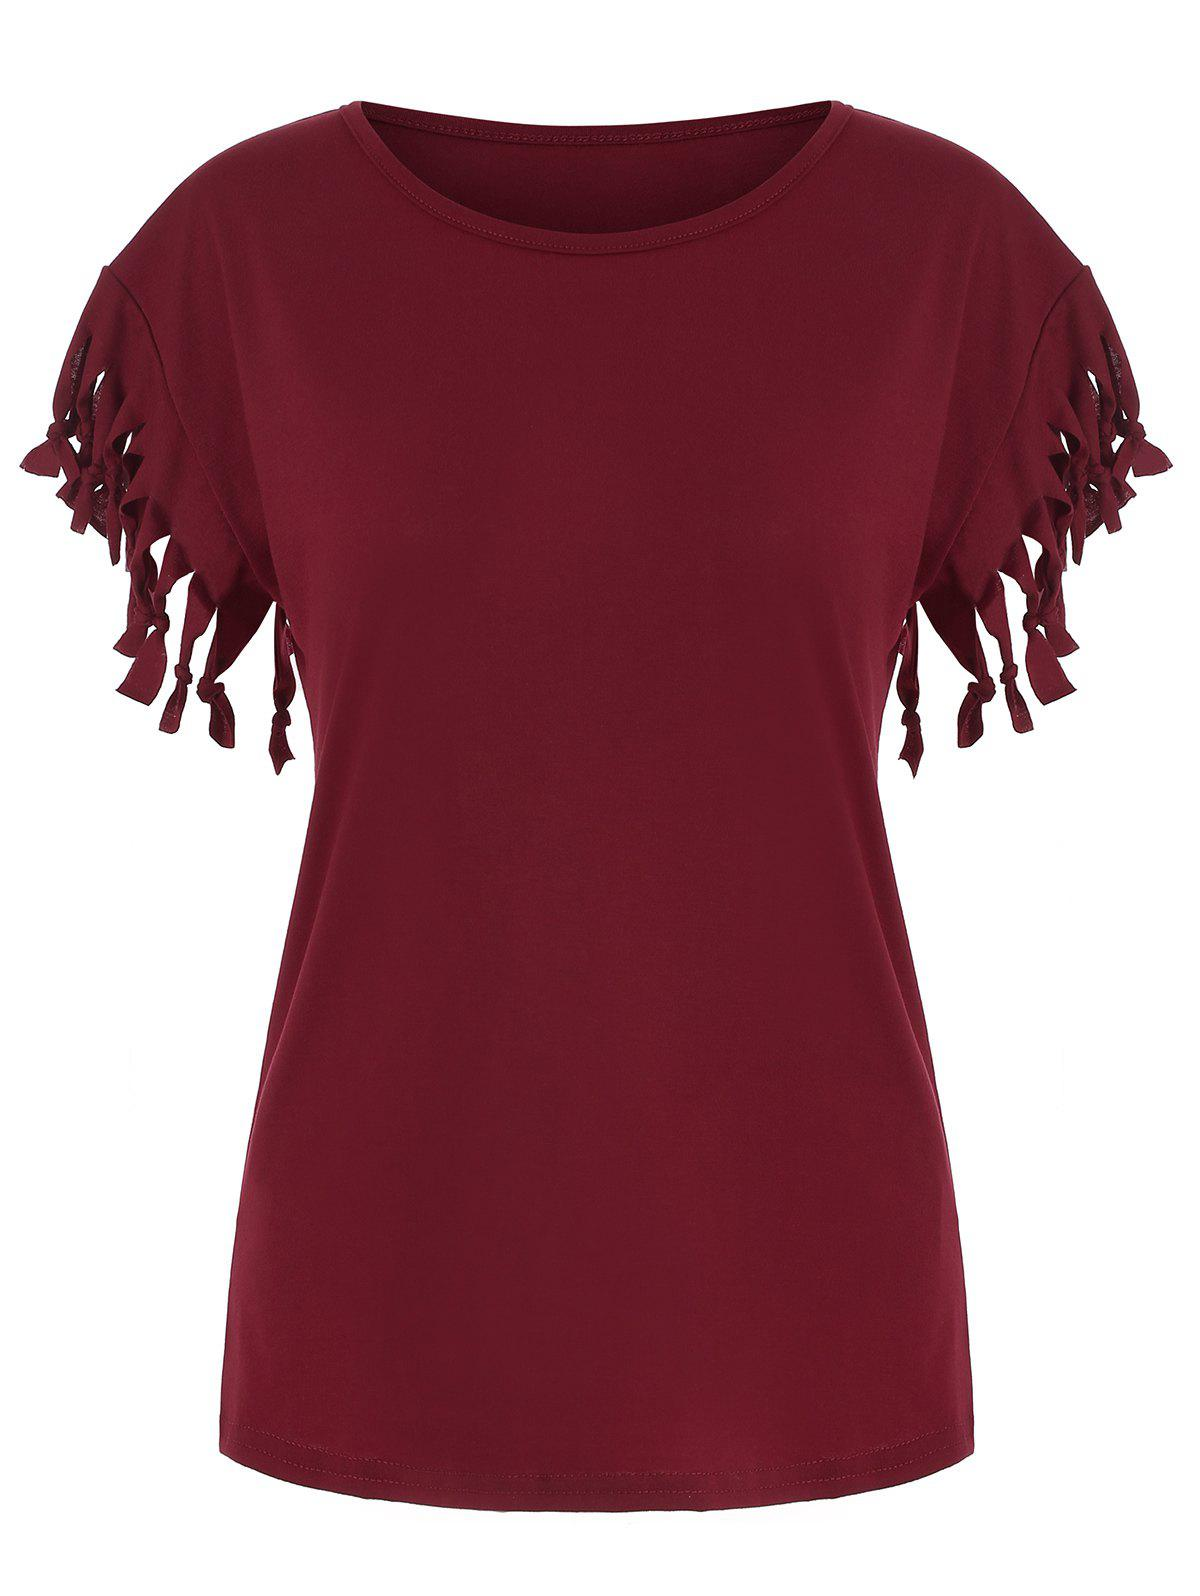 Store Fringed Solid Casual T-shirt